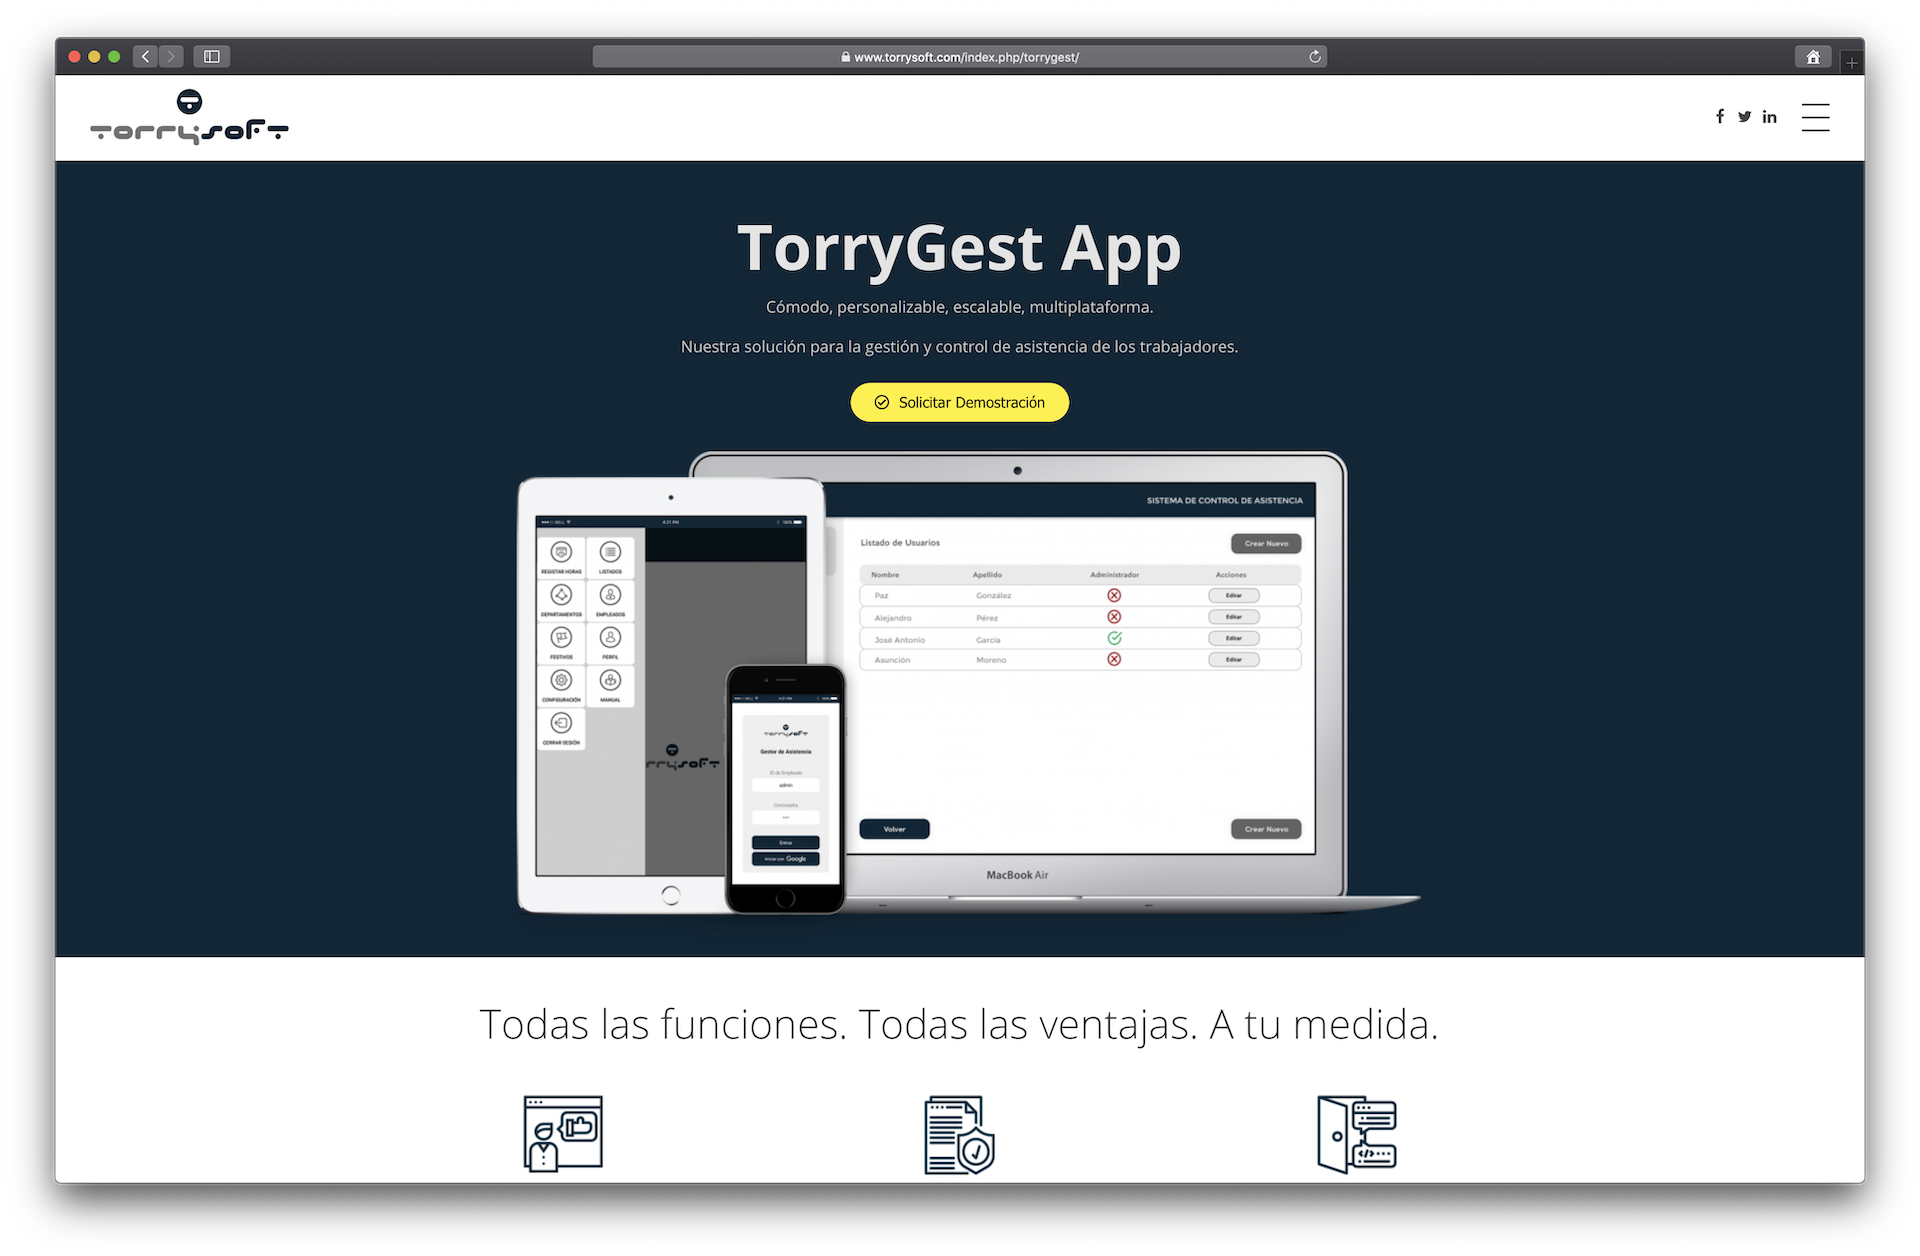 Producto: TorryGest